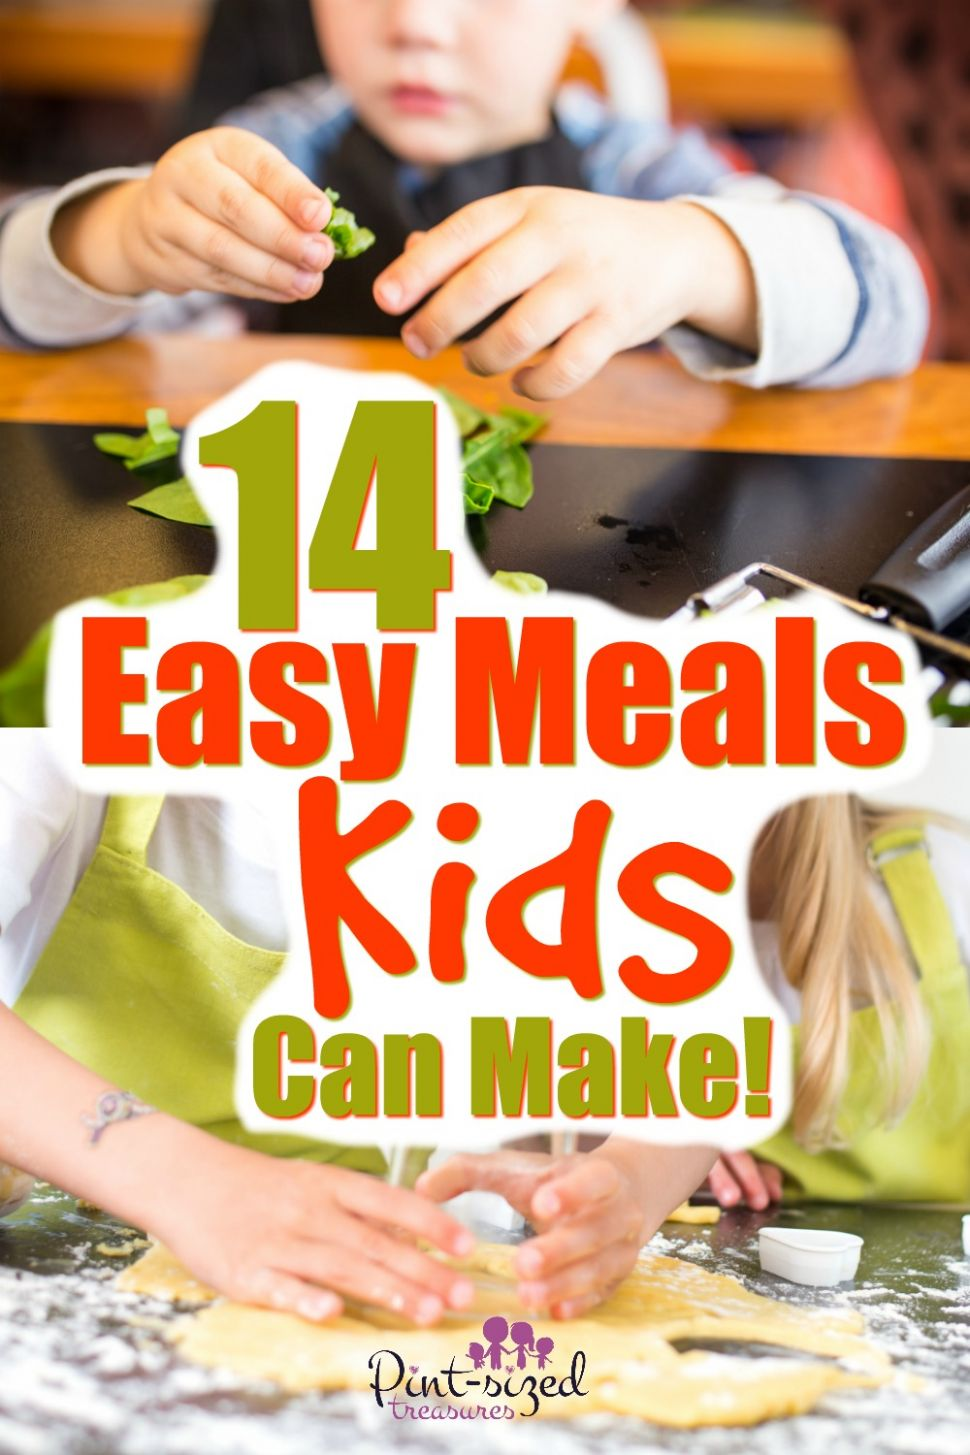 11 Easy Meals Kids Can Make - Simple Recipes To Make